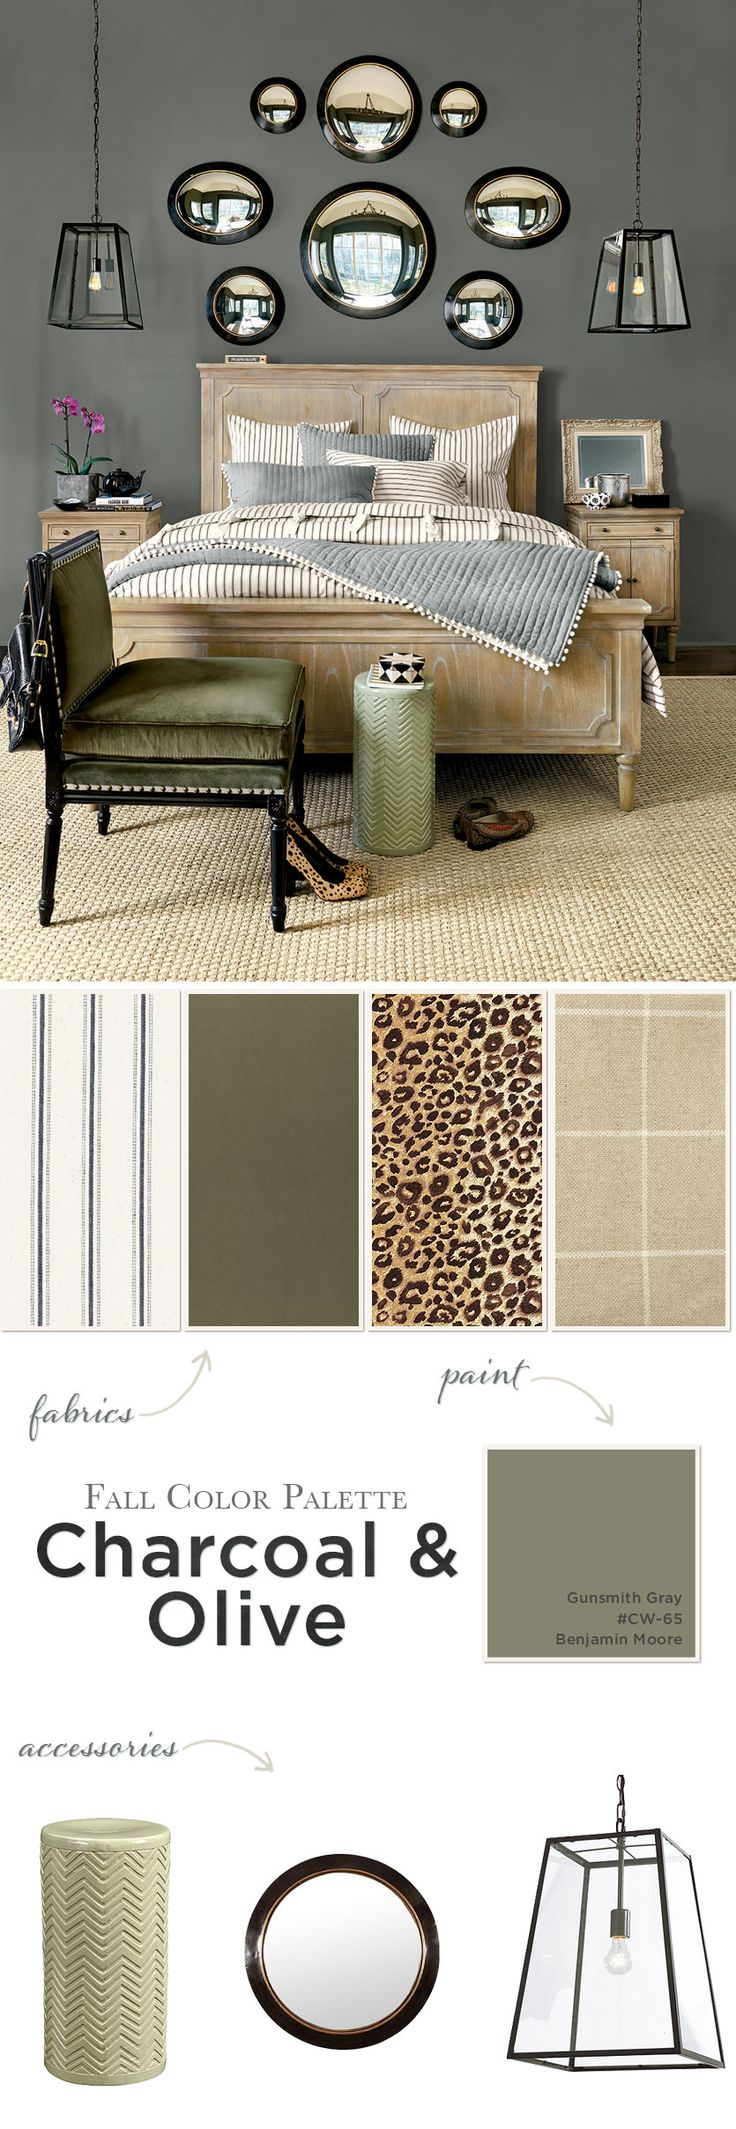 Benjamin moore lenox tan hc 44 - 17 Best Ideas About Benjamin Moore Tan On Pinterest Manchester Tan Thunder Clouds And Rust Color Schemes